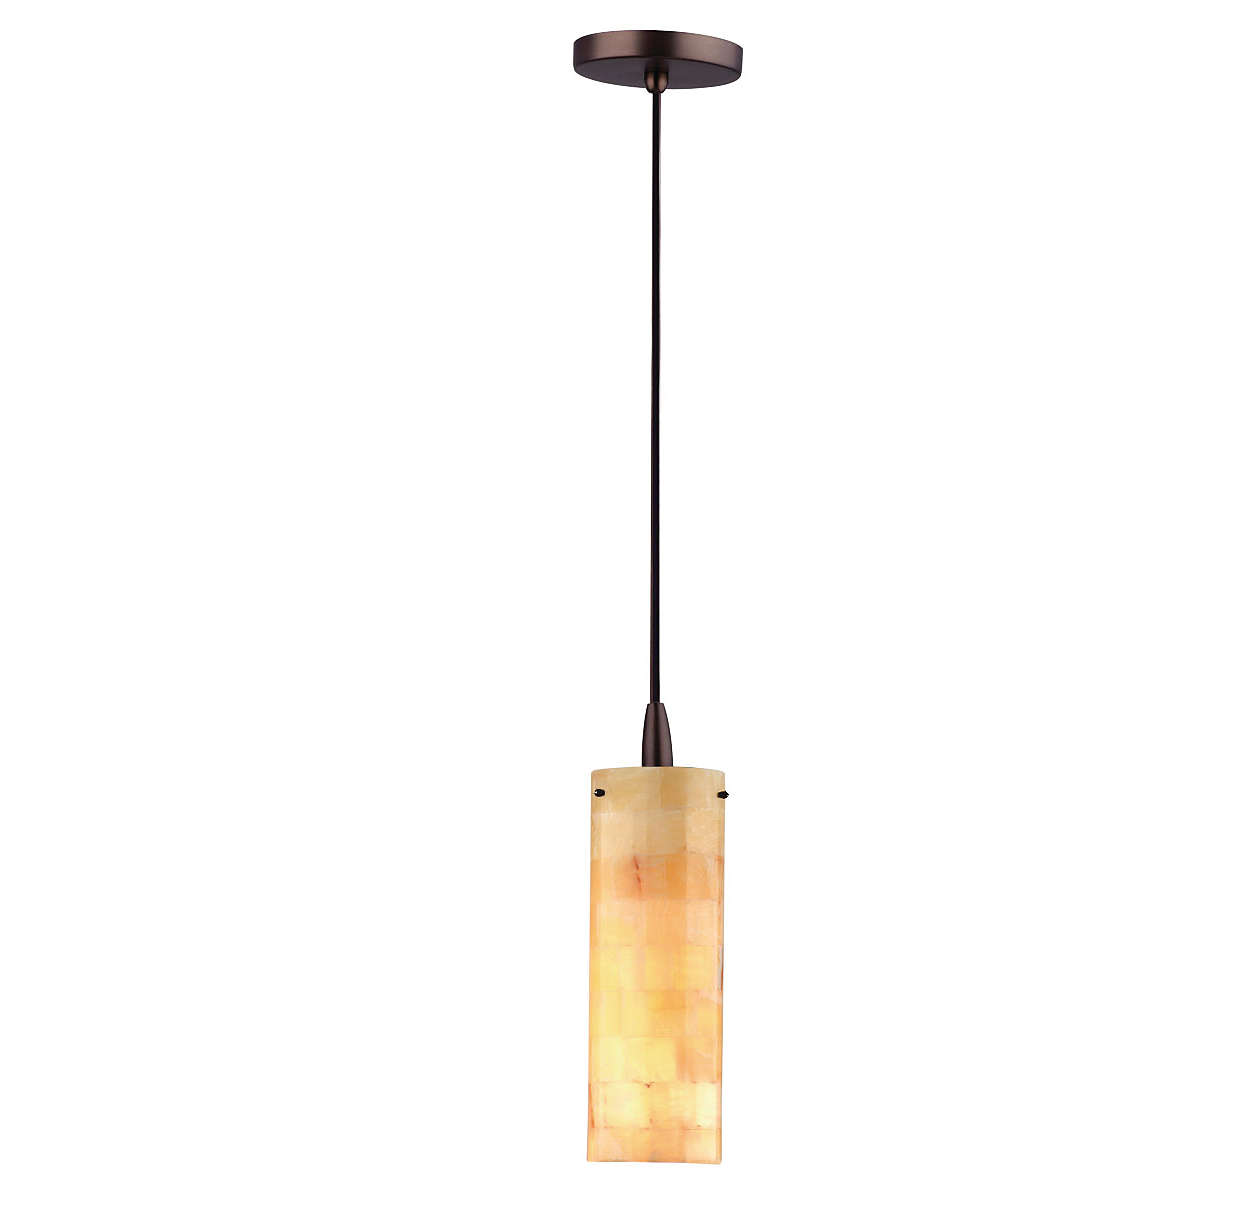 Onyx Mosaic 1-light pendant, Merlot Bronze finish